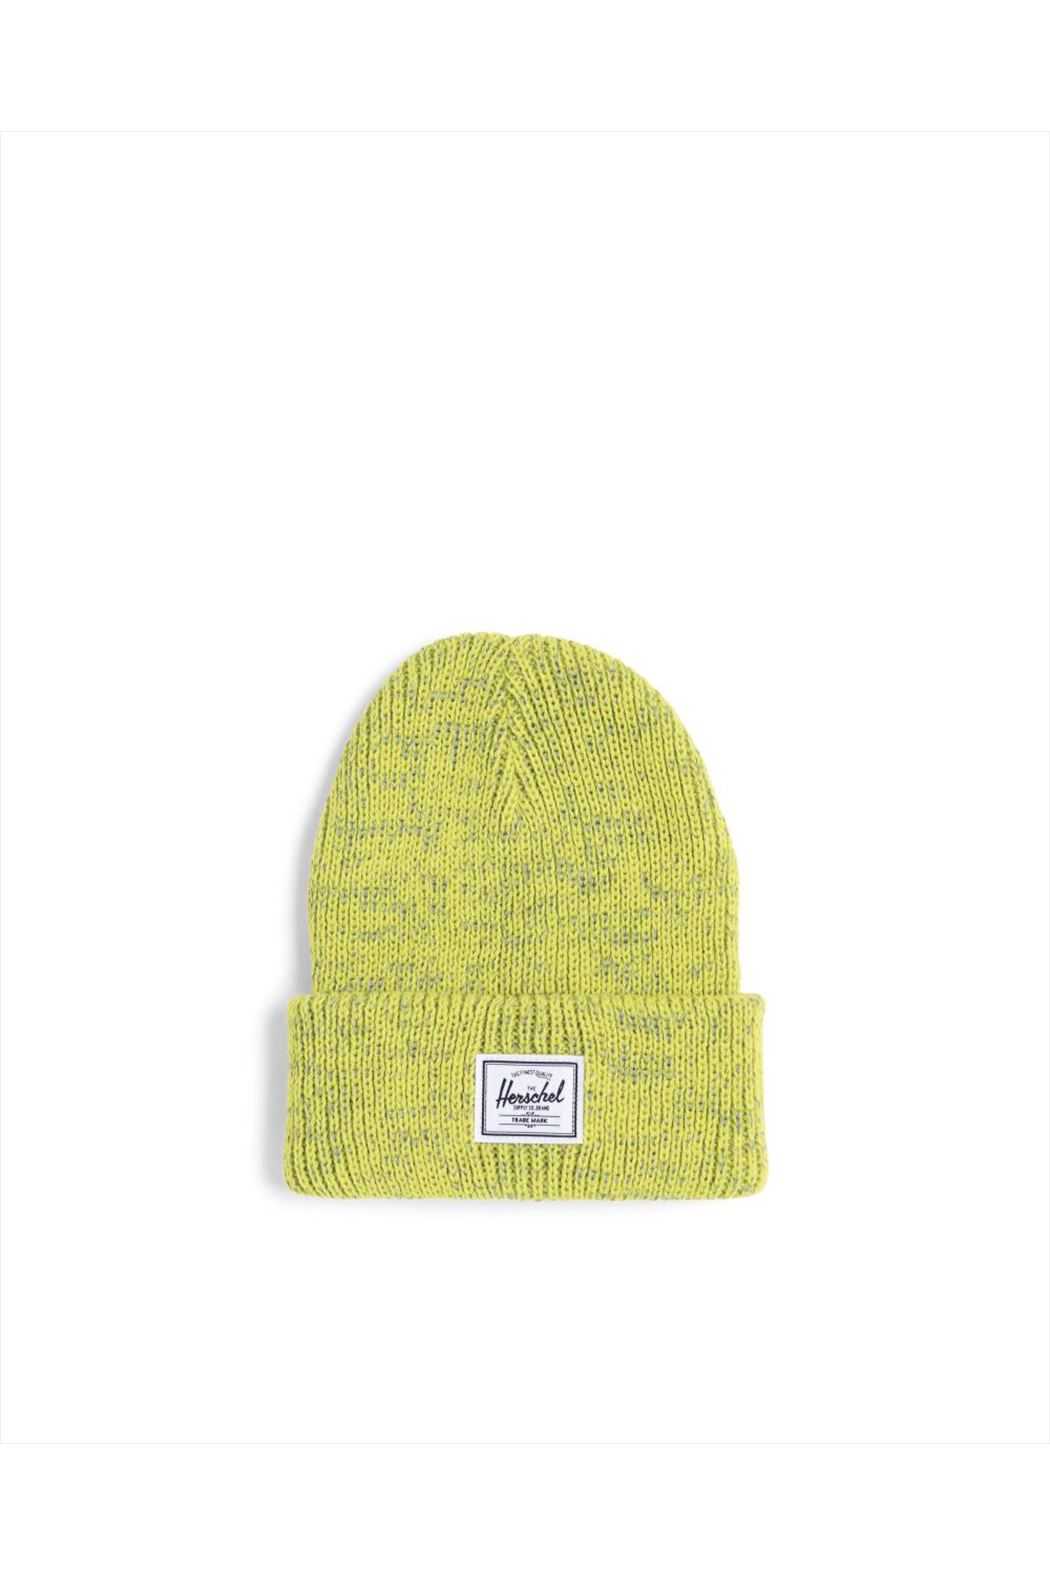 Herschel Supply Co. Abbott Reflective Beanie - Lime Punch - Main Image